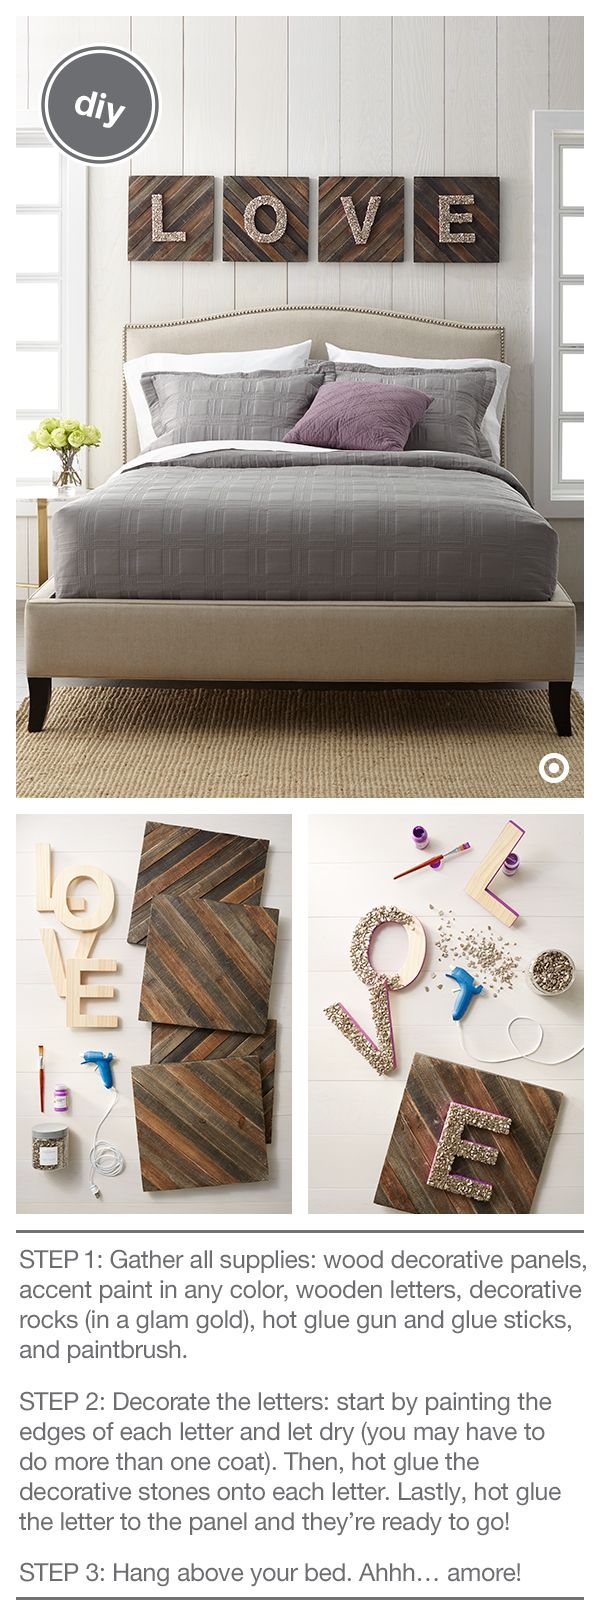 What's love got to do with it? Everything! This DIY will add a sweet, personal…